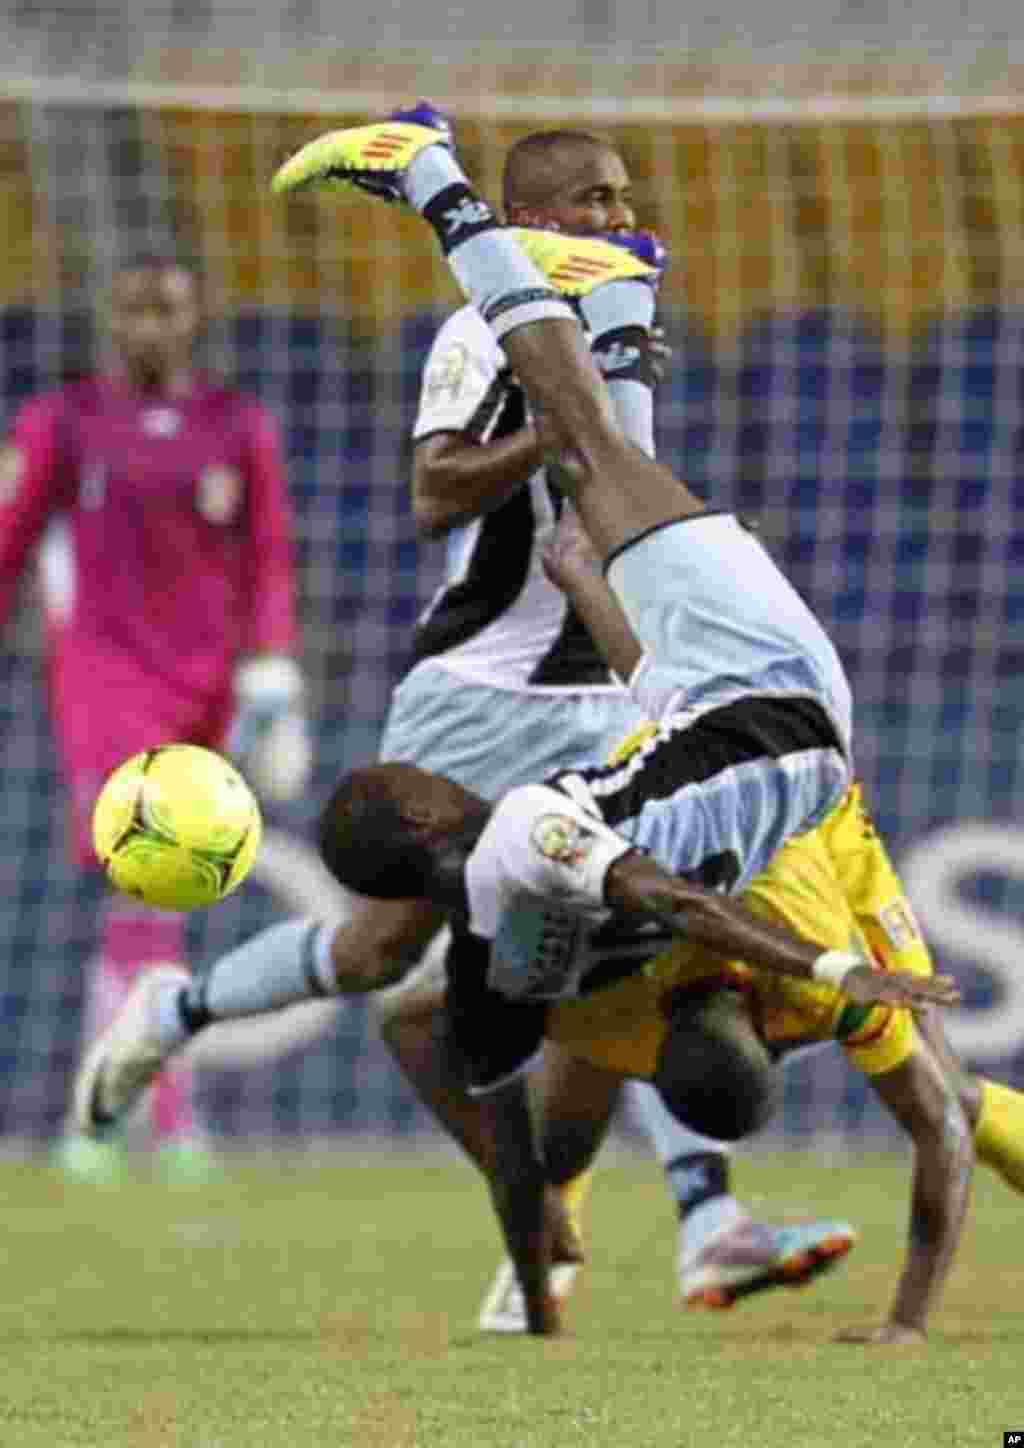 Botswana's Mogakolondi Ngele falls during their final African Cup of Nations Group D soccer match against Mali at the Stade De L'Amitie Stadium in Libreville February 1, 2012.